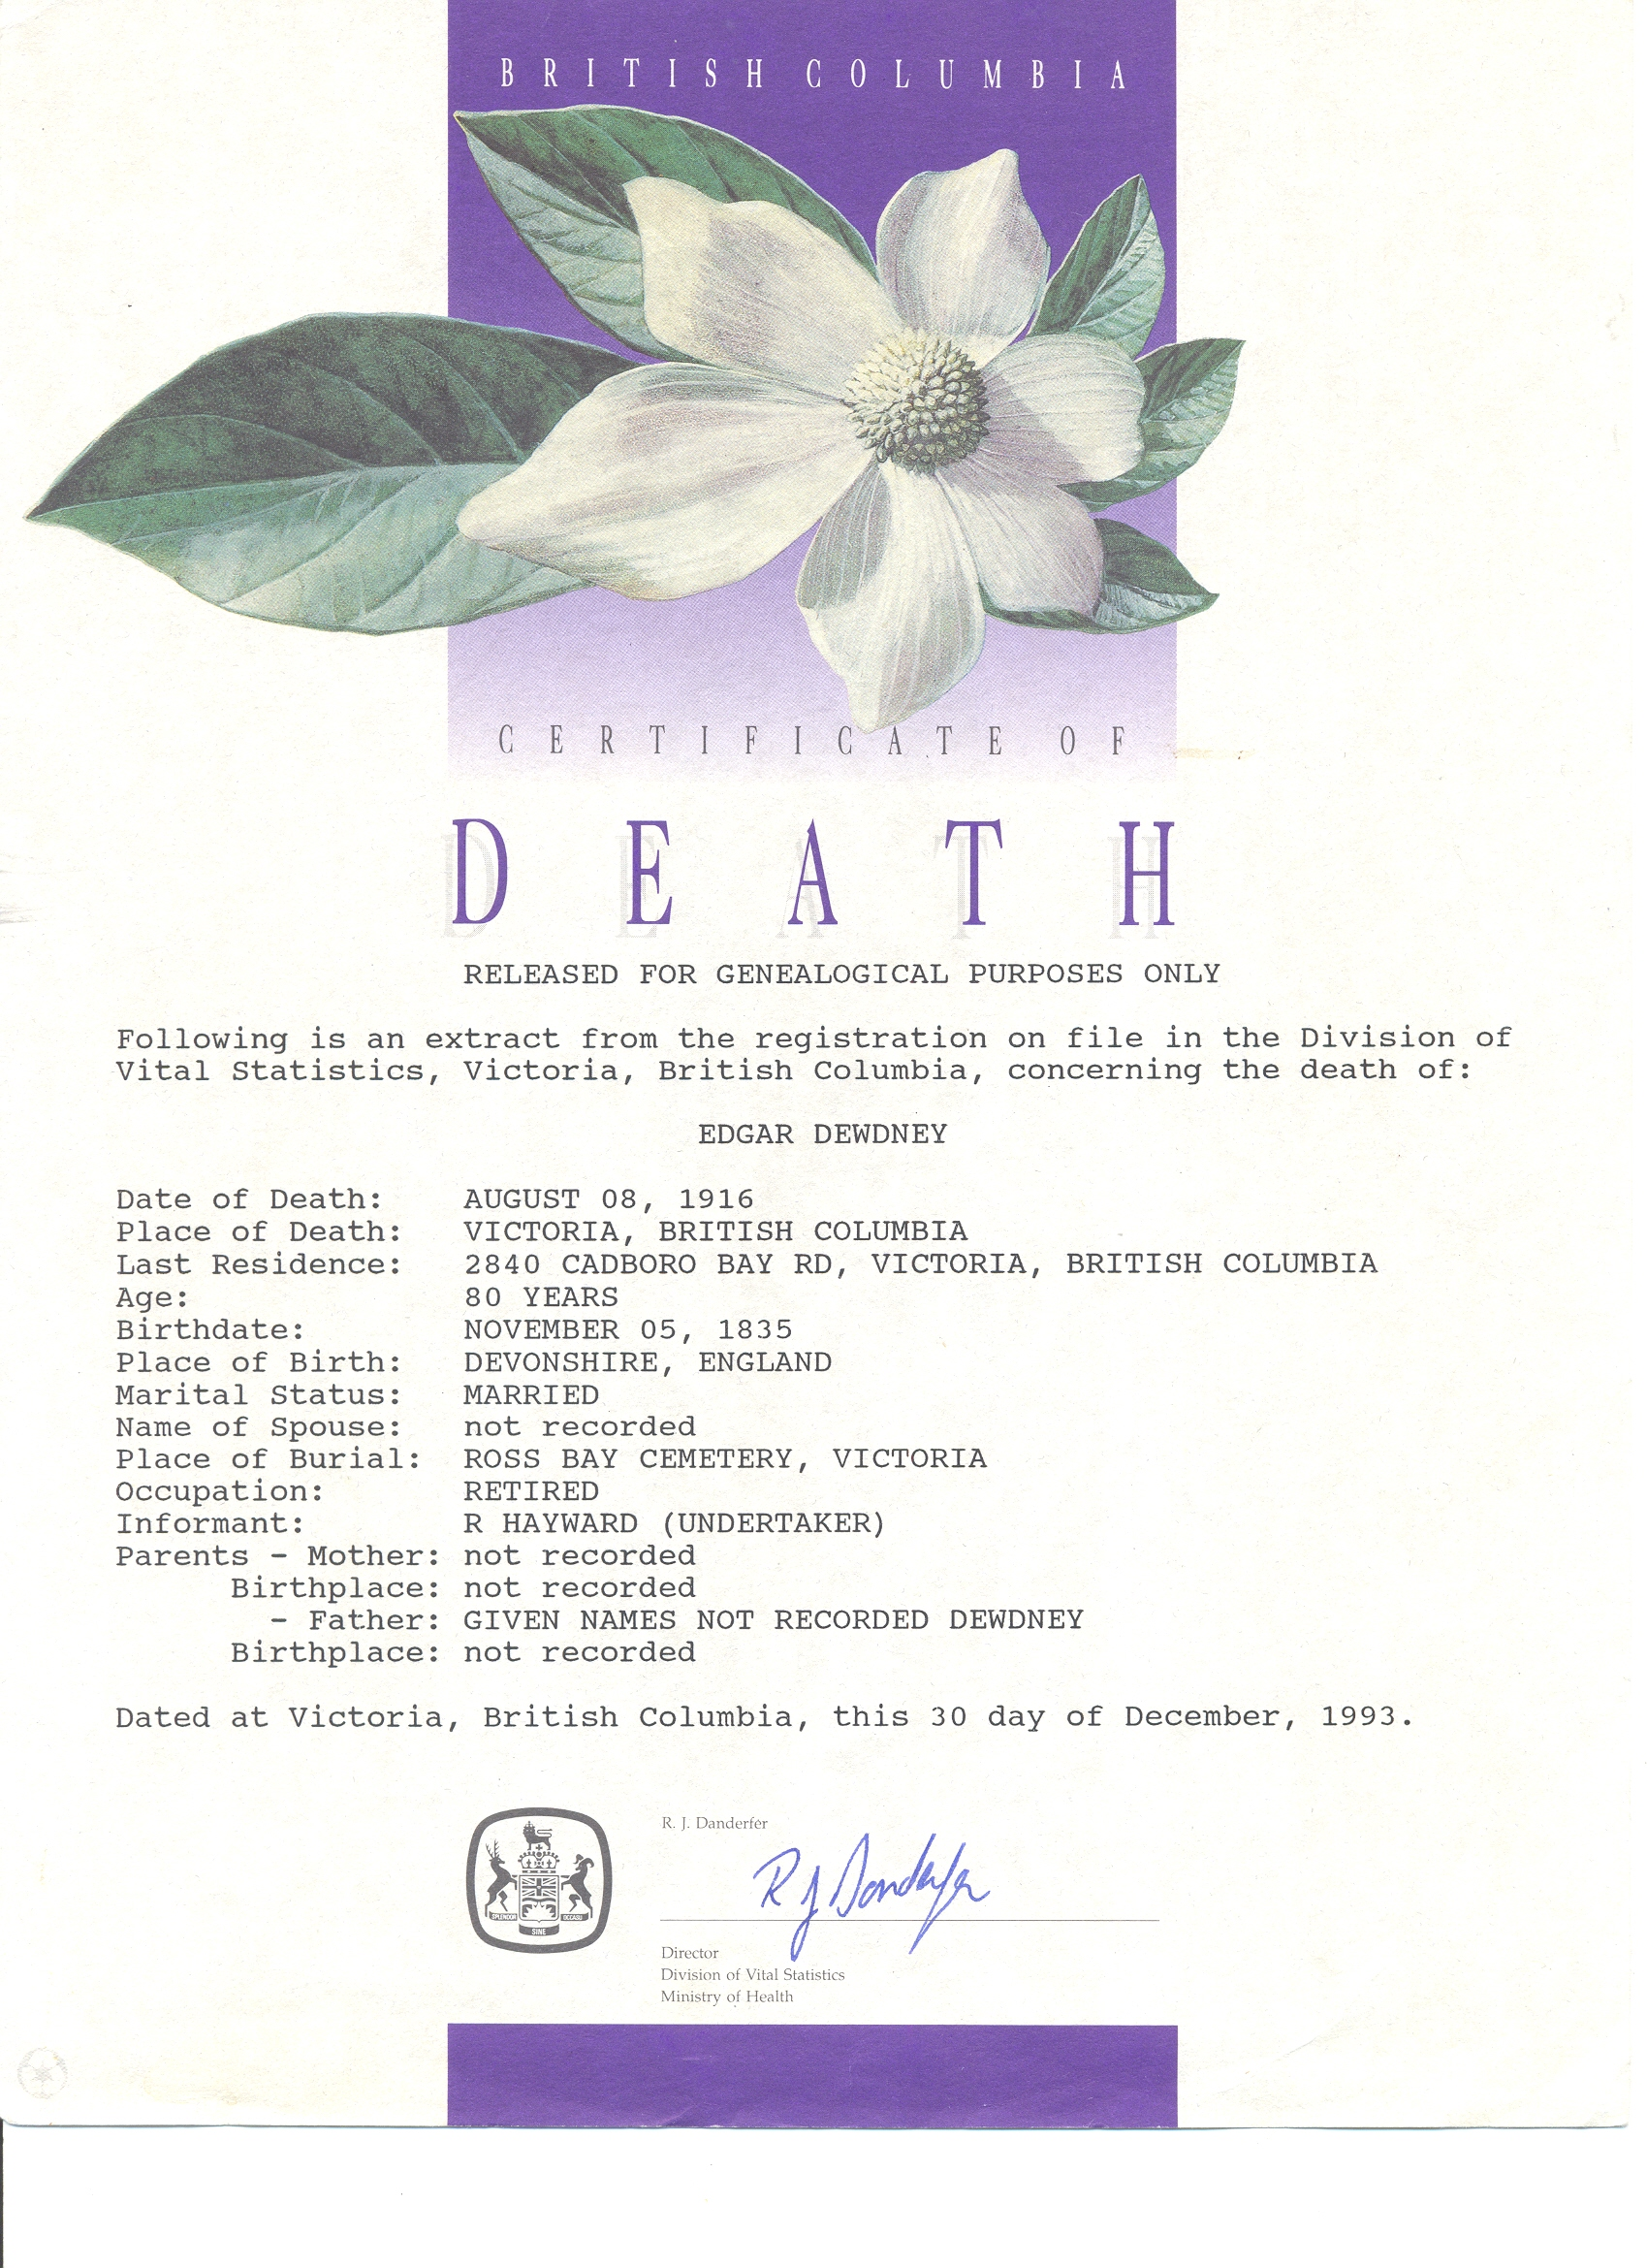 Death Records and Death Certificates - How to obtain a copy